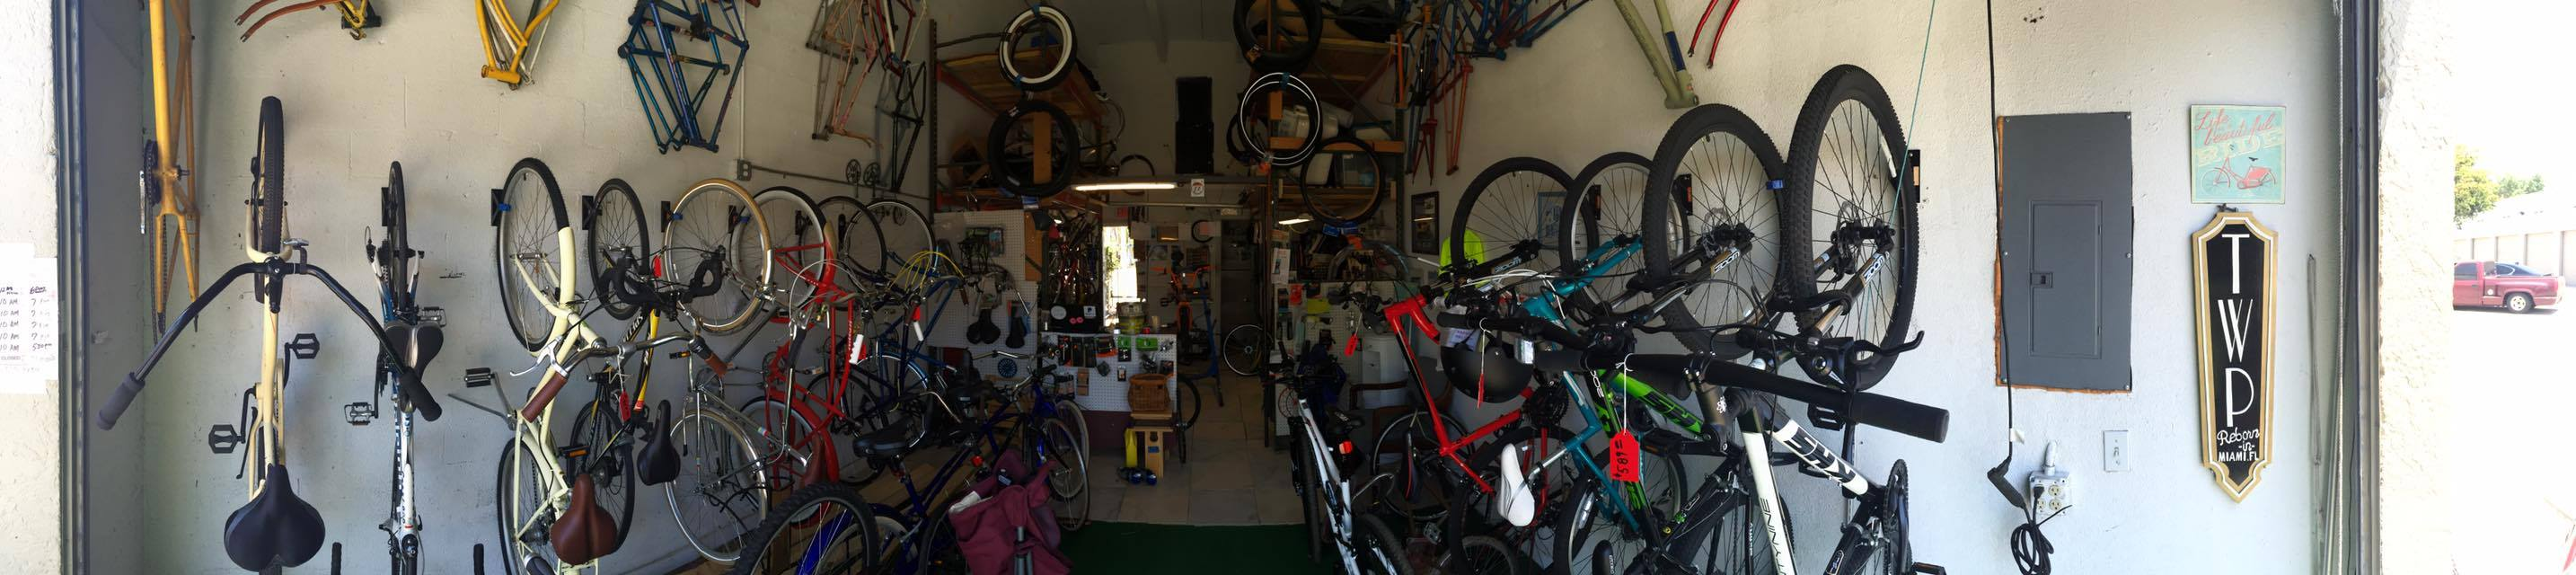 Two Wheel Picker Bicycle Shop - Miami Informative